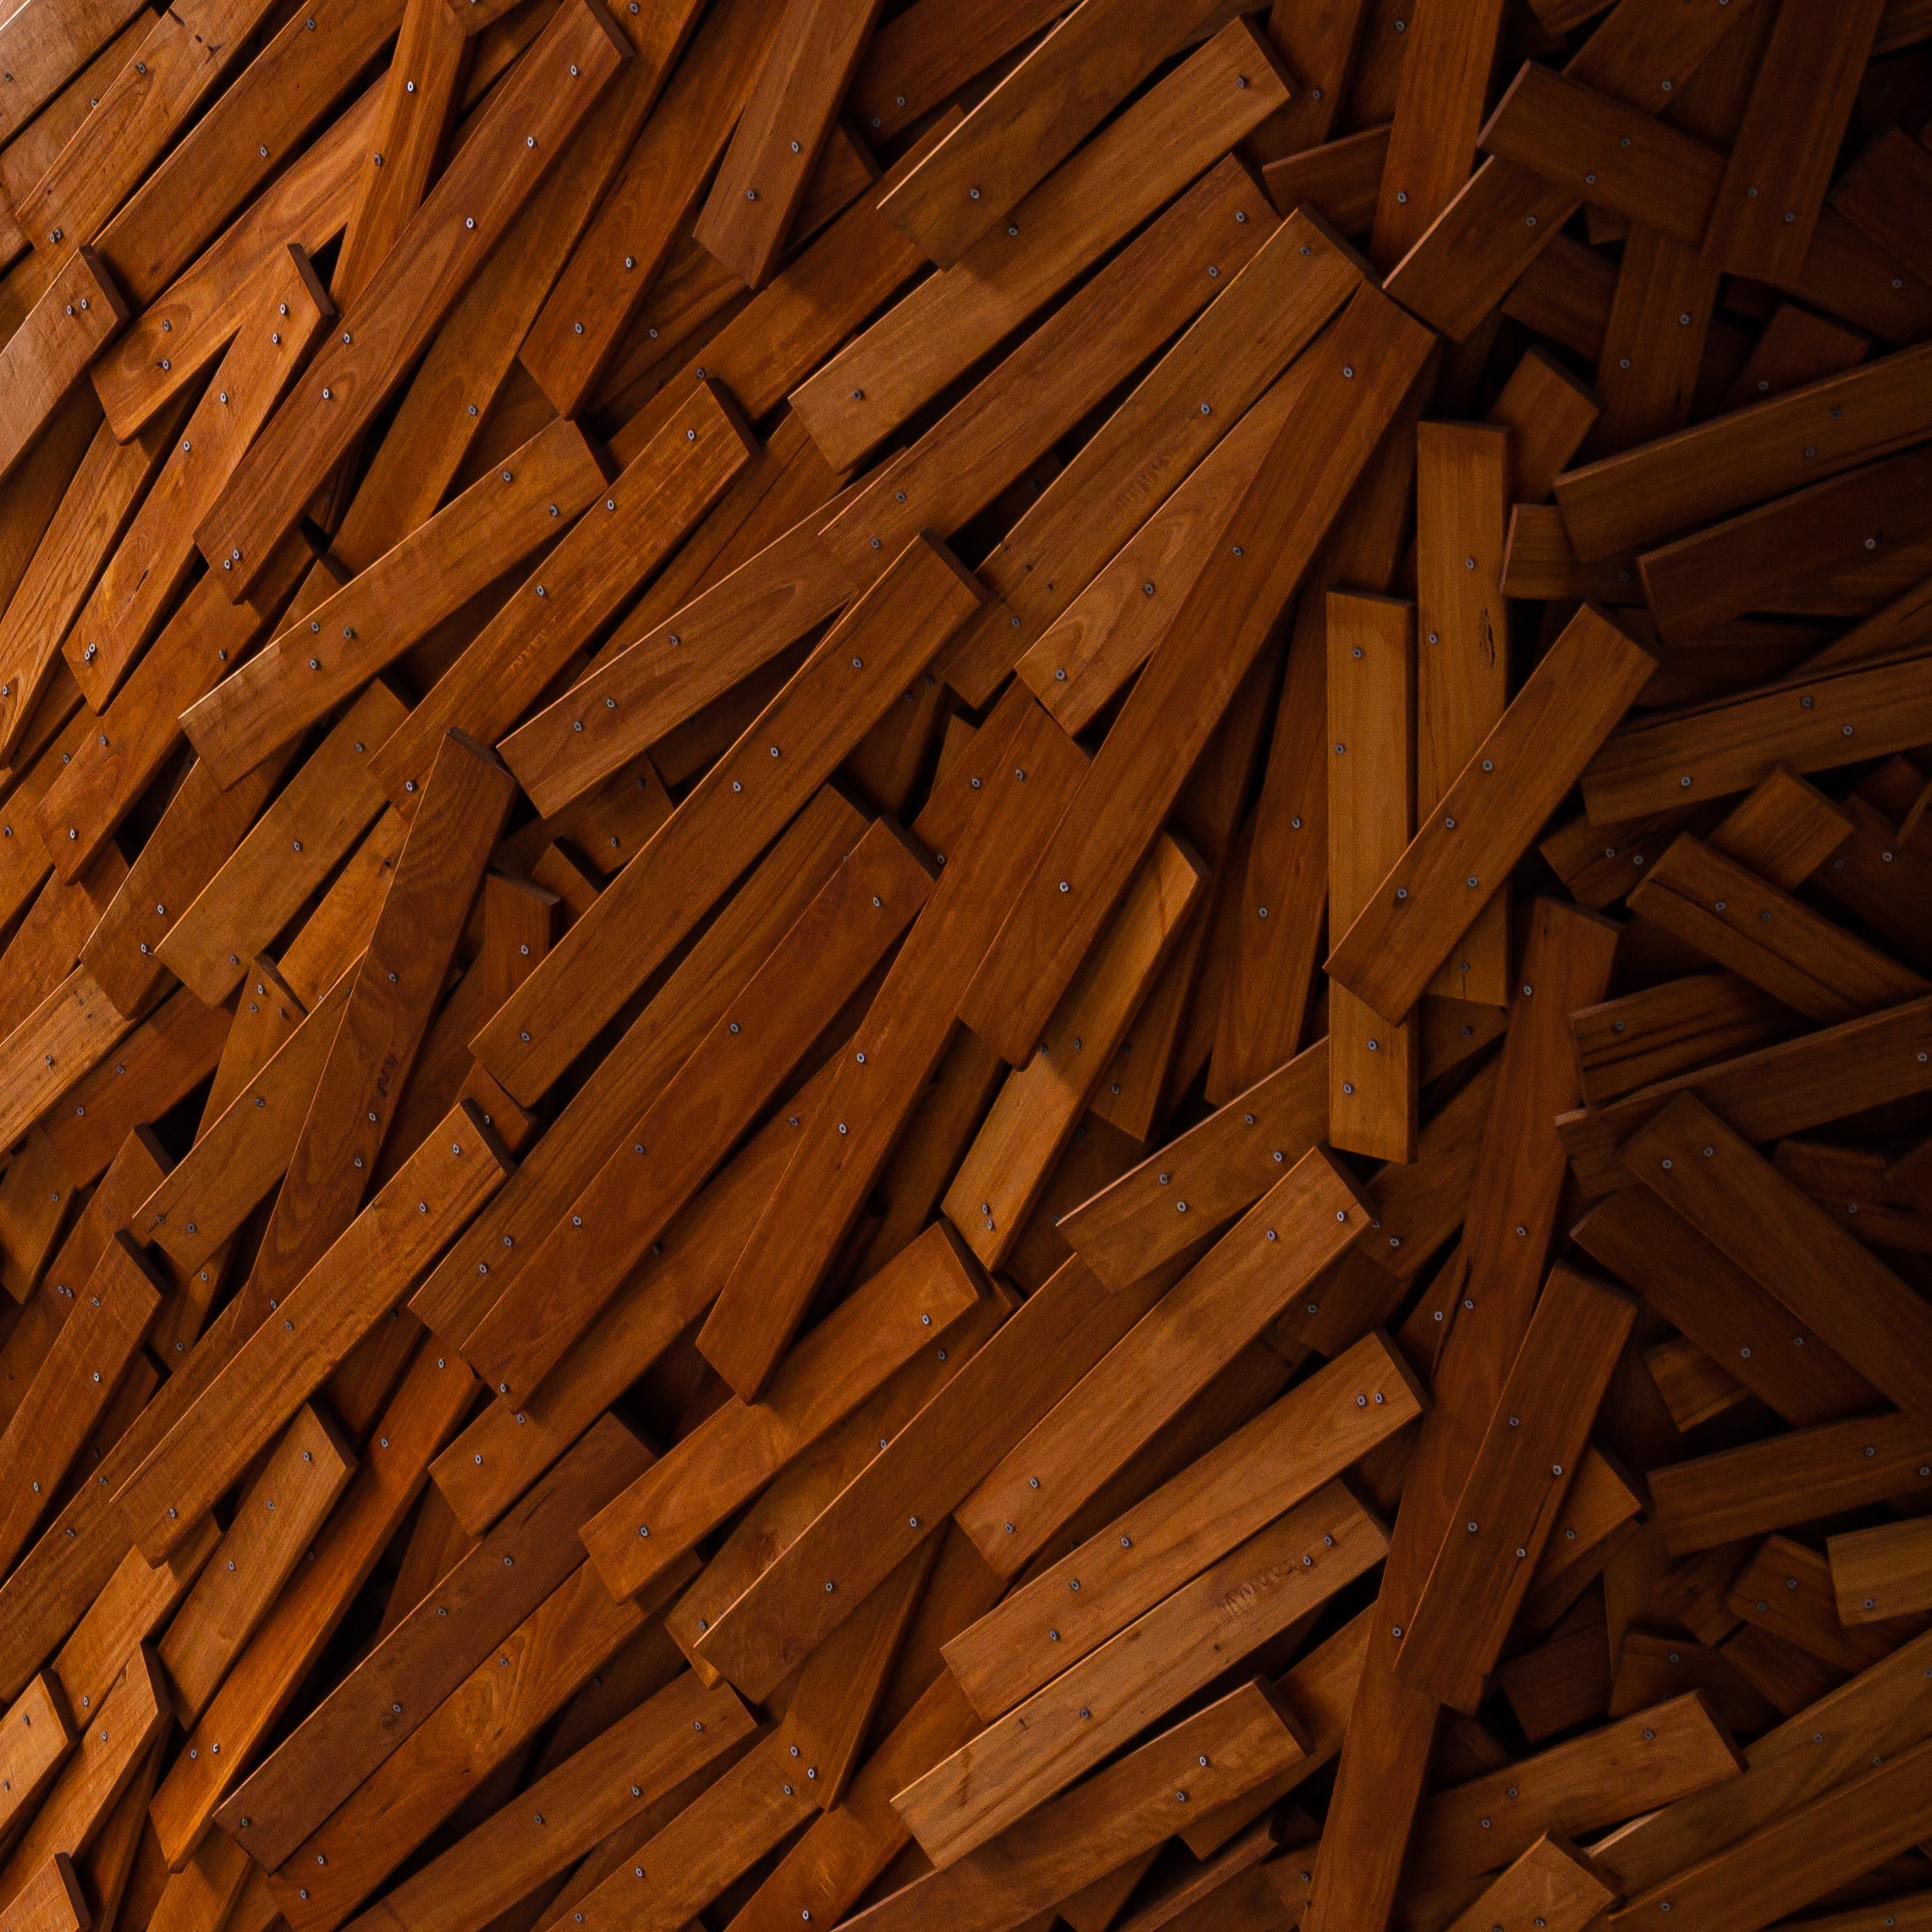 133238 download wallpaper Textures, Texture, Planks, Strips, Wood, Wooden, Brown screensavers and pictures for free